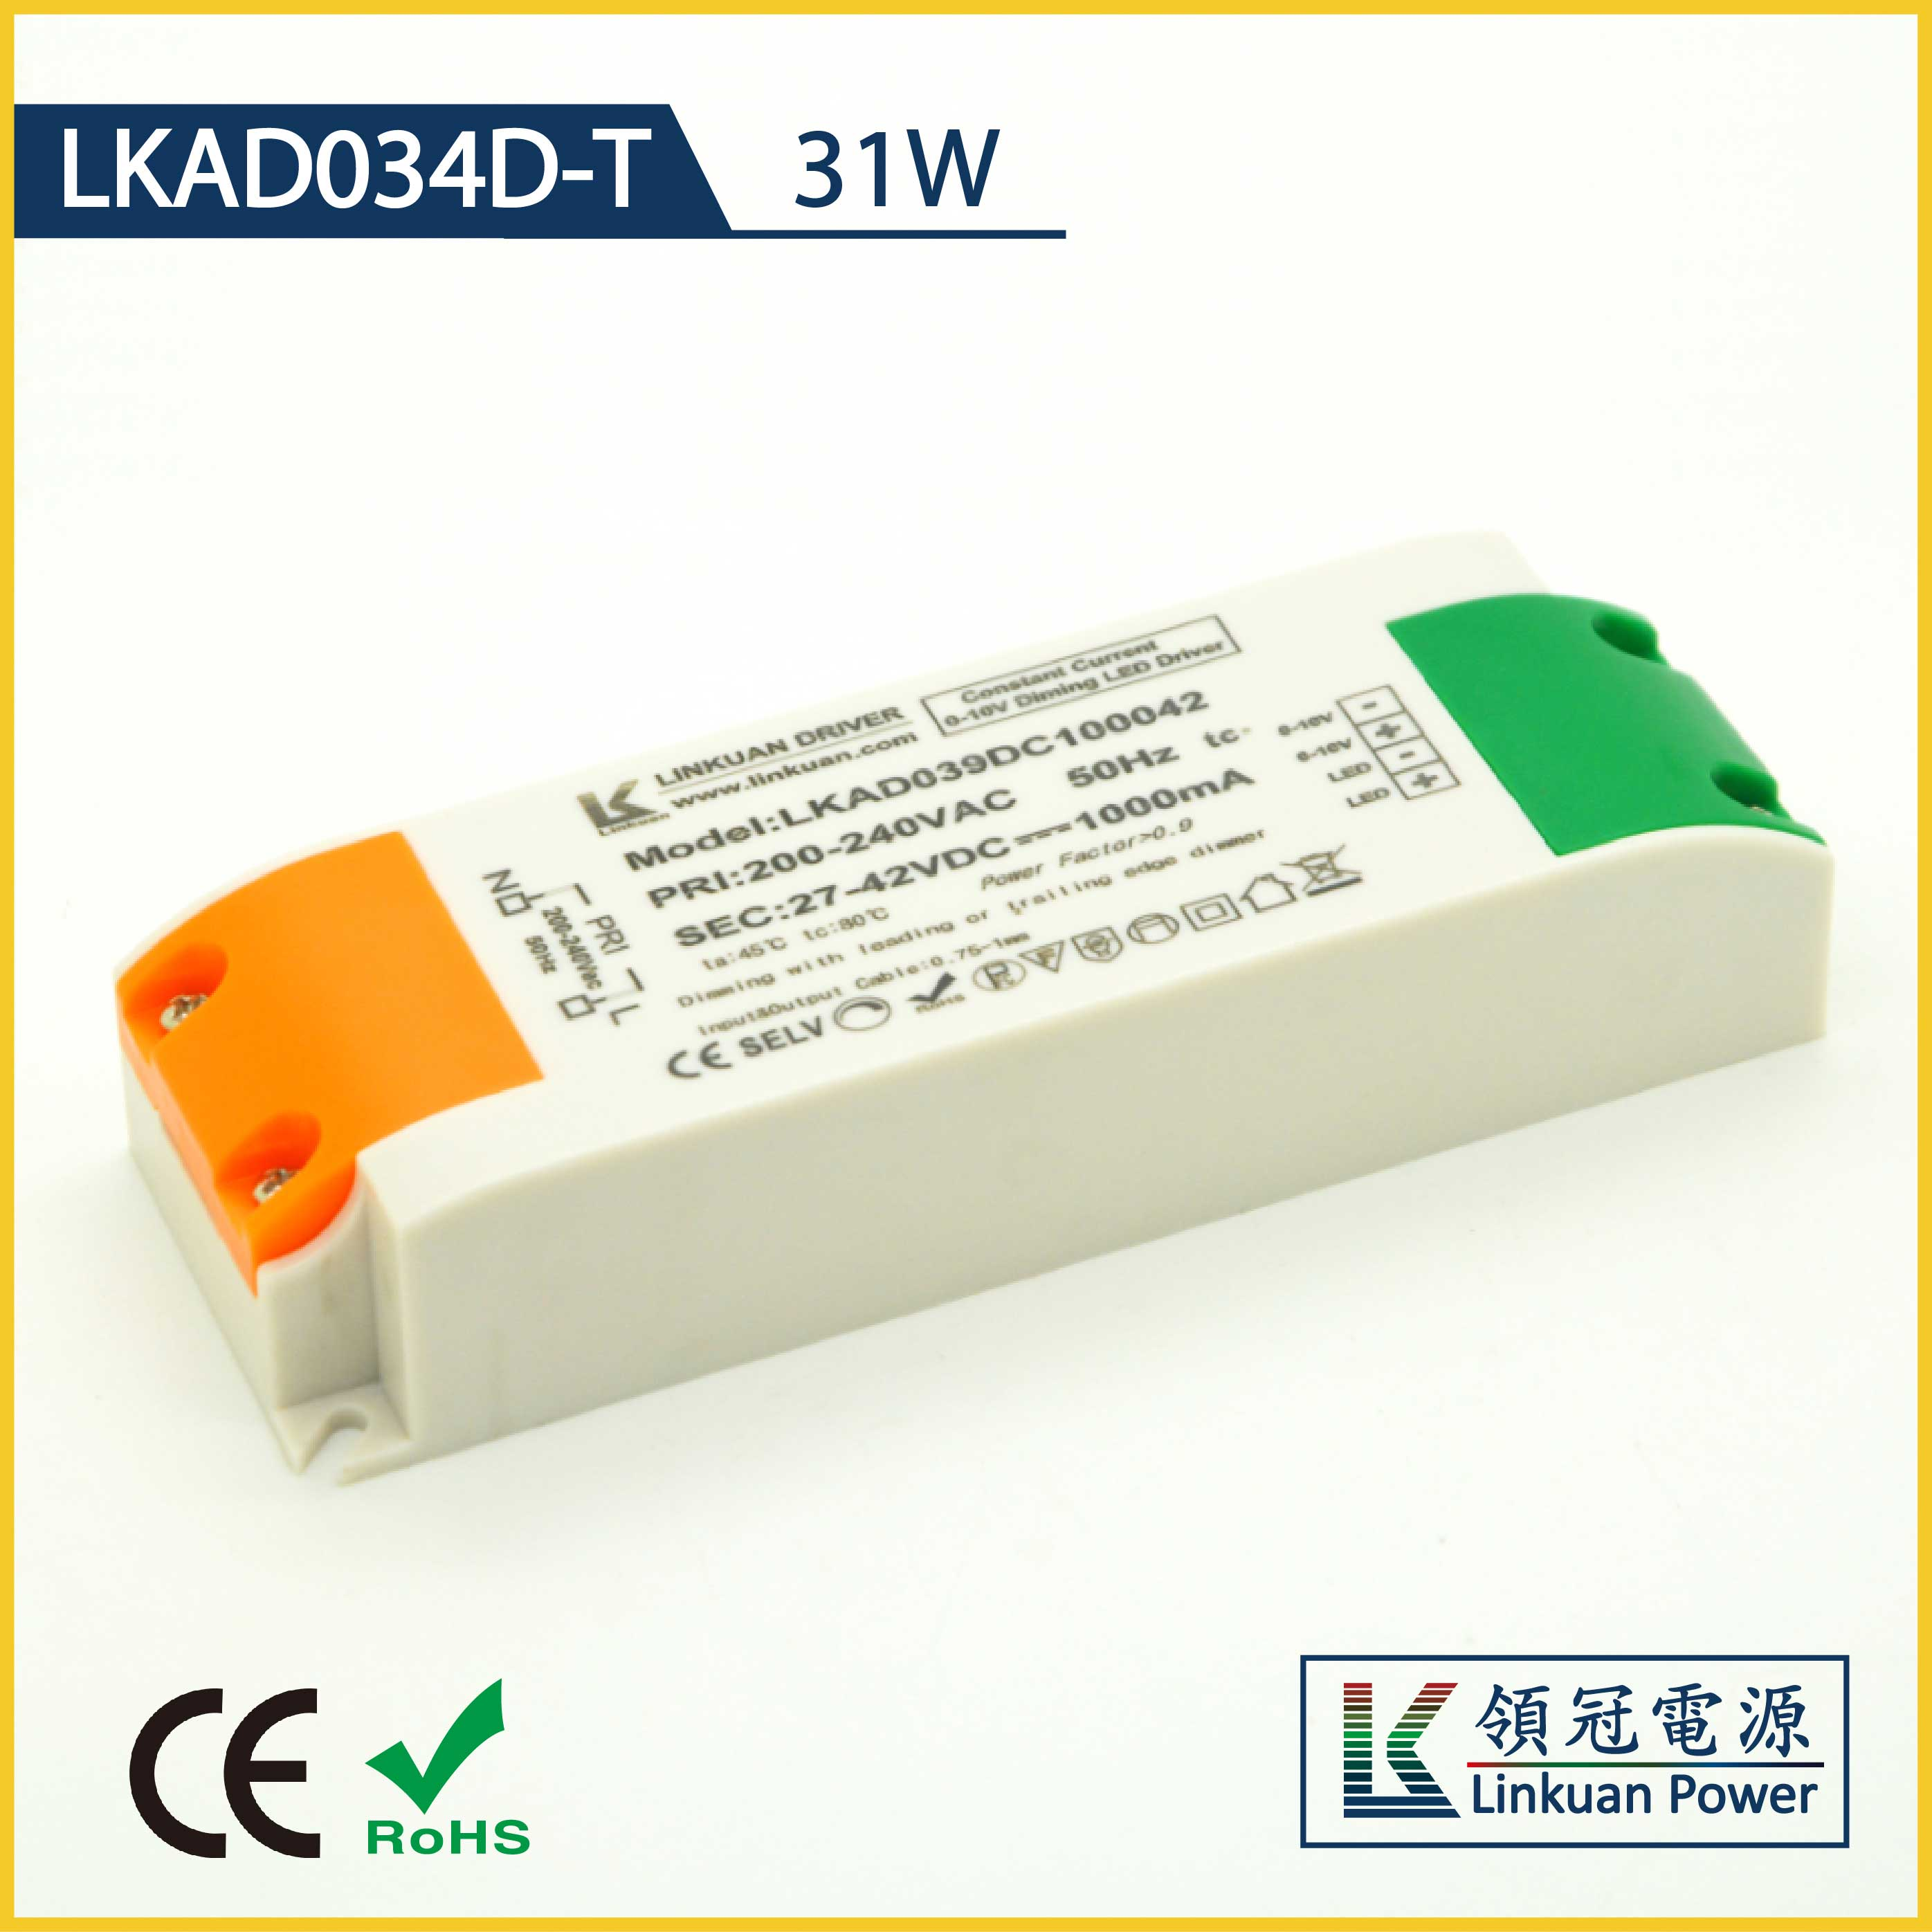 LKAD034D-T 31W 10-42V 750mA triac dimmable led driver with DIP switch